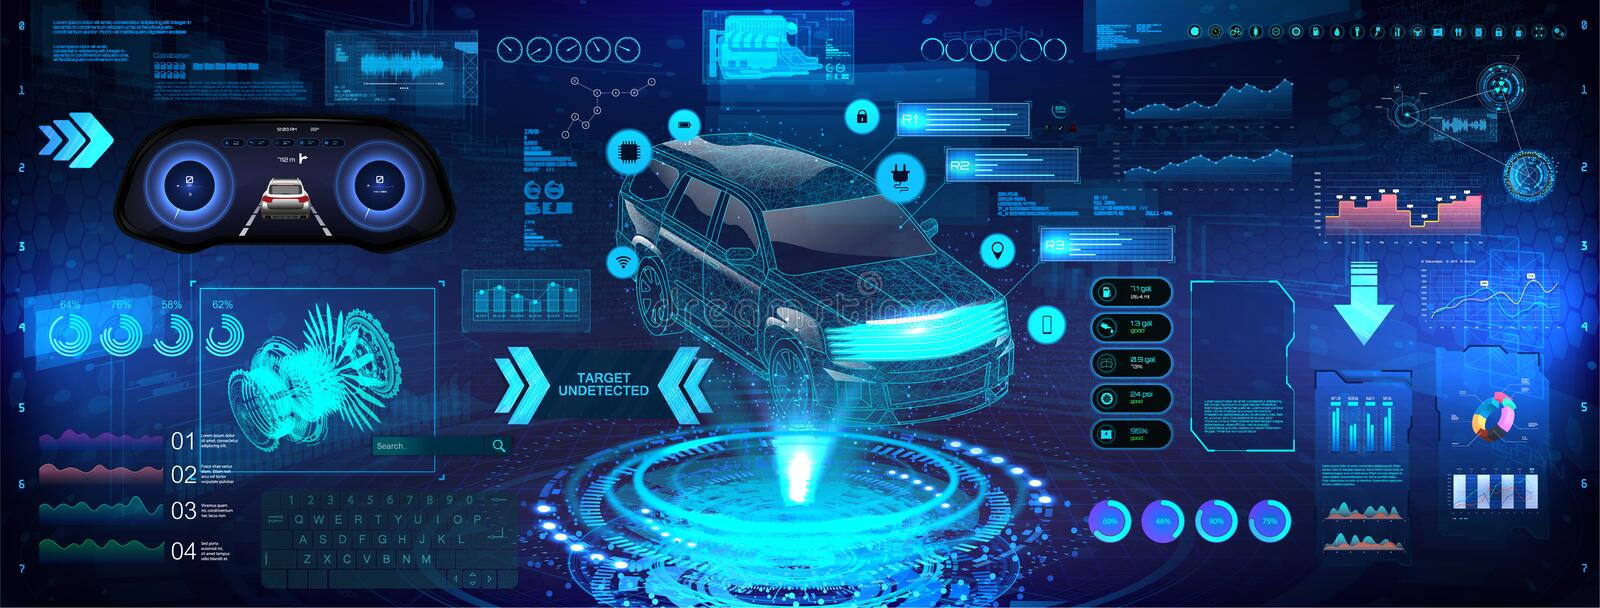 Hi-tech Car analysis and diagnostics in HUD style. 3D Crossover X-ray car hologram, automotive projection, hardware diagnostics condition of car. HUD graphic vector illustration